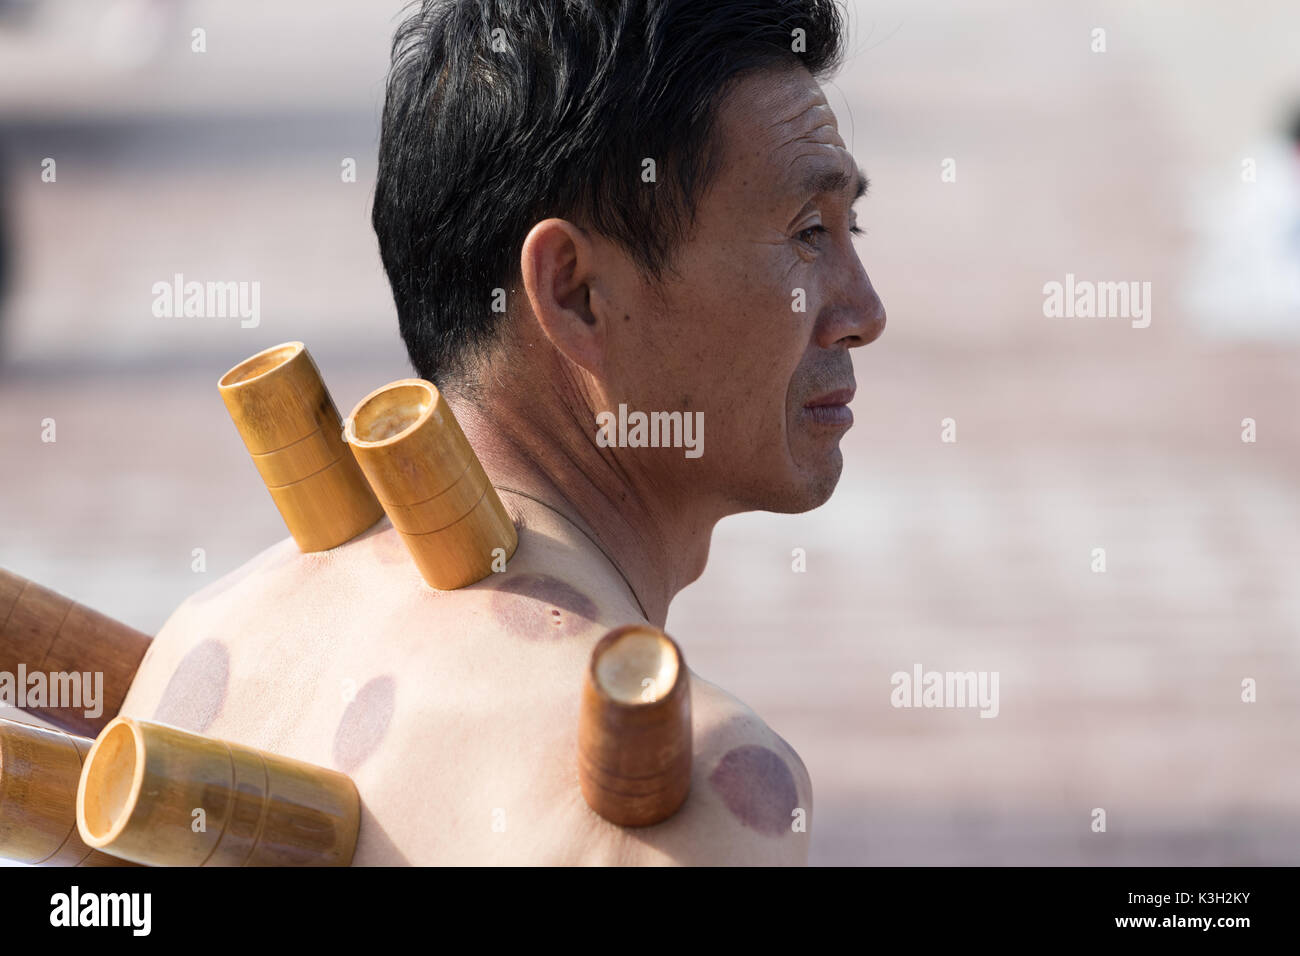 Duolun Xian, Inner Mongolia, China - July 28, 2017: Chinese Cupping Therapy is very common among Chinese people even in the streets.It is a traditiona - Stock Image